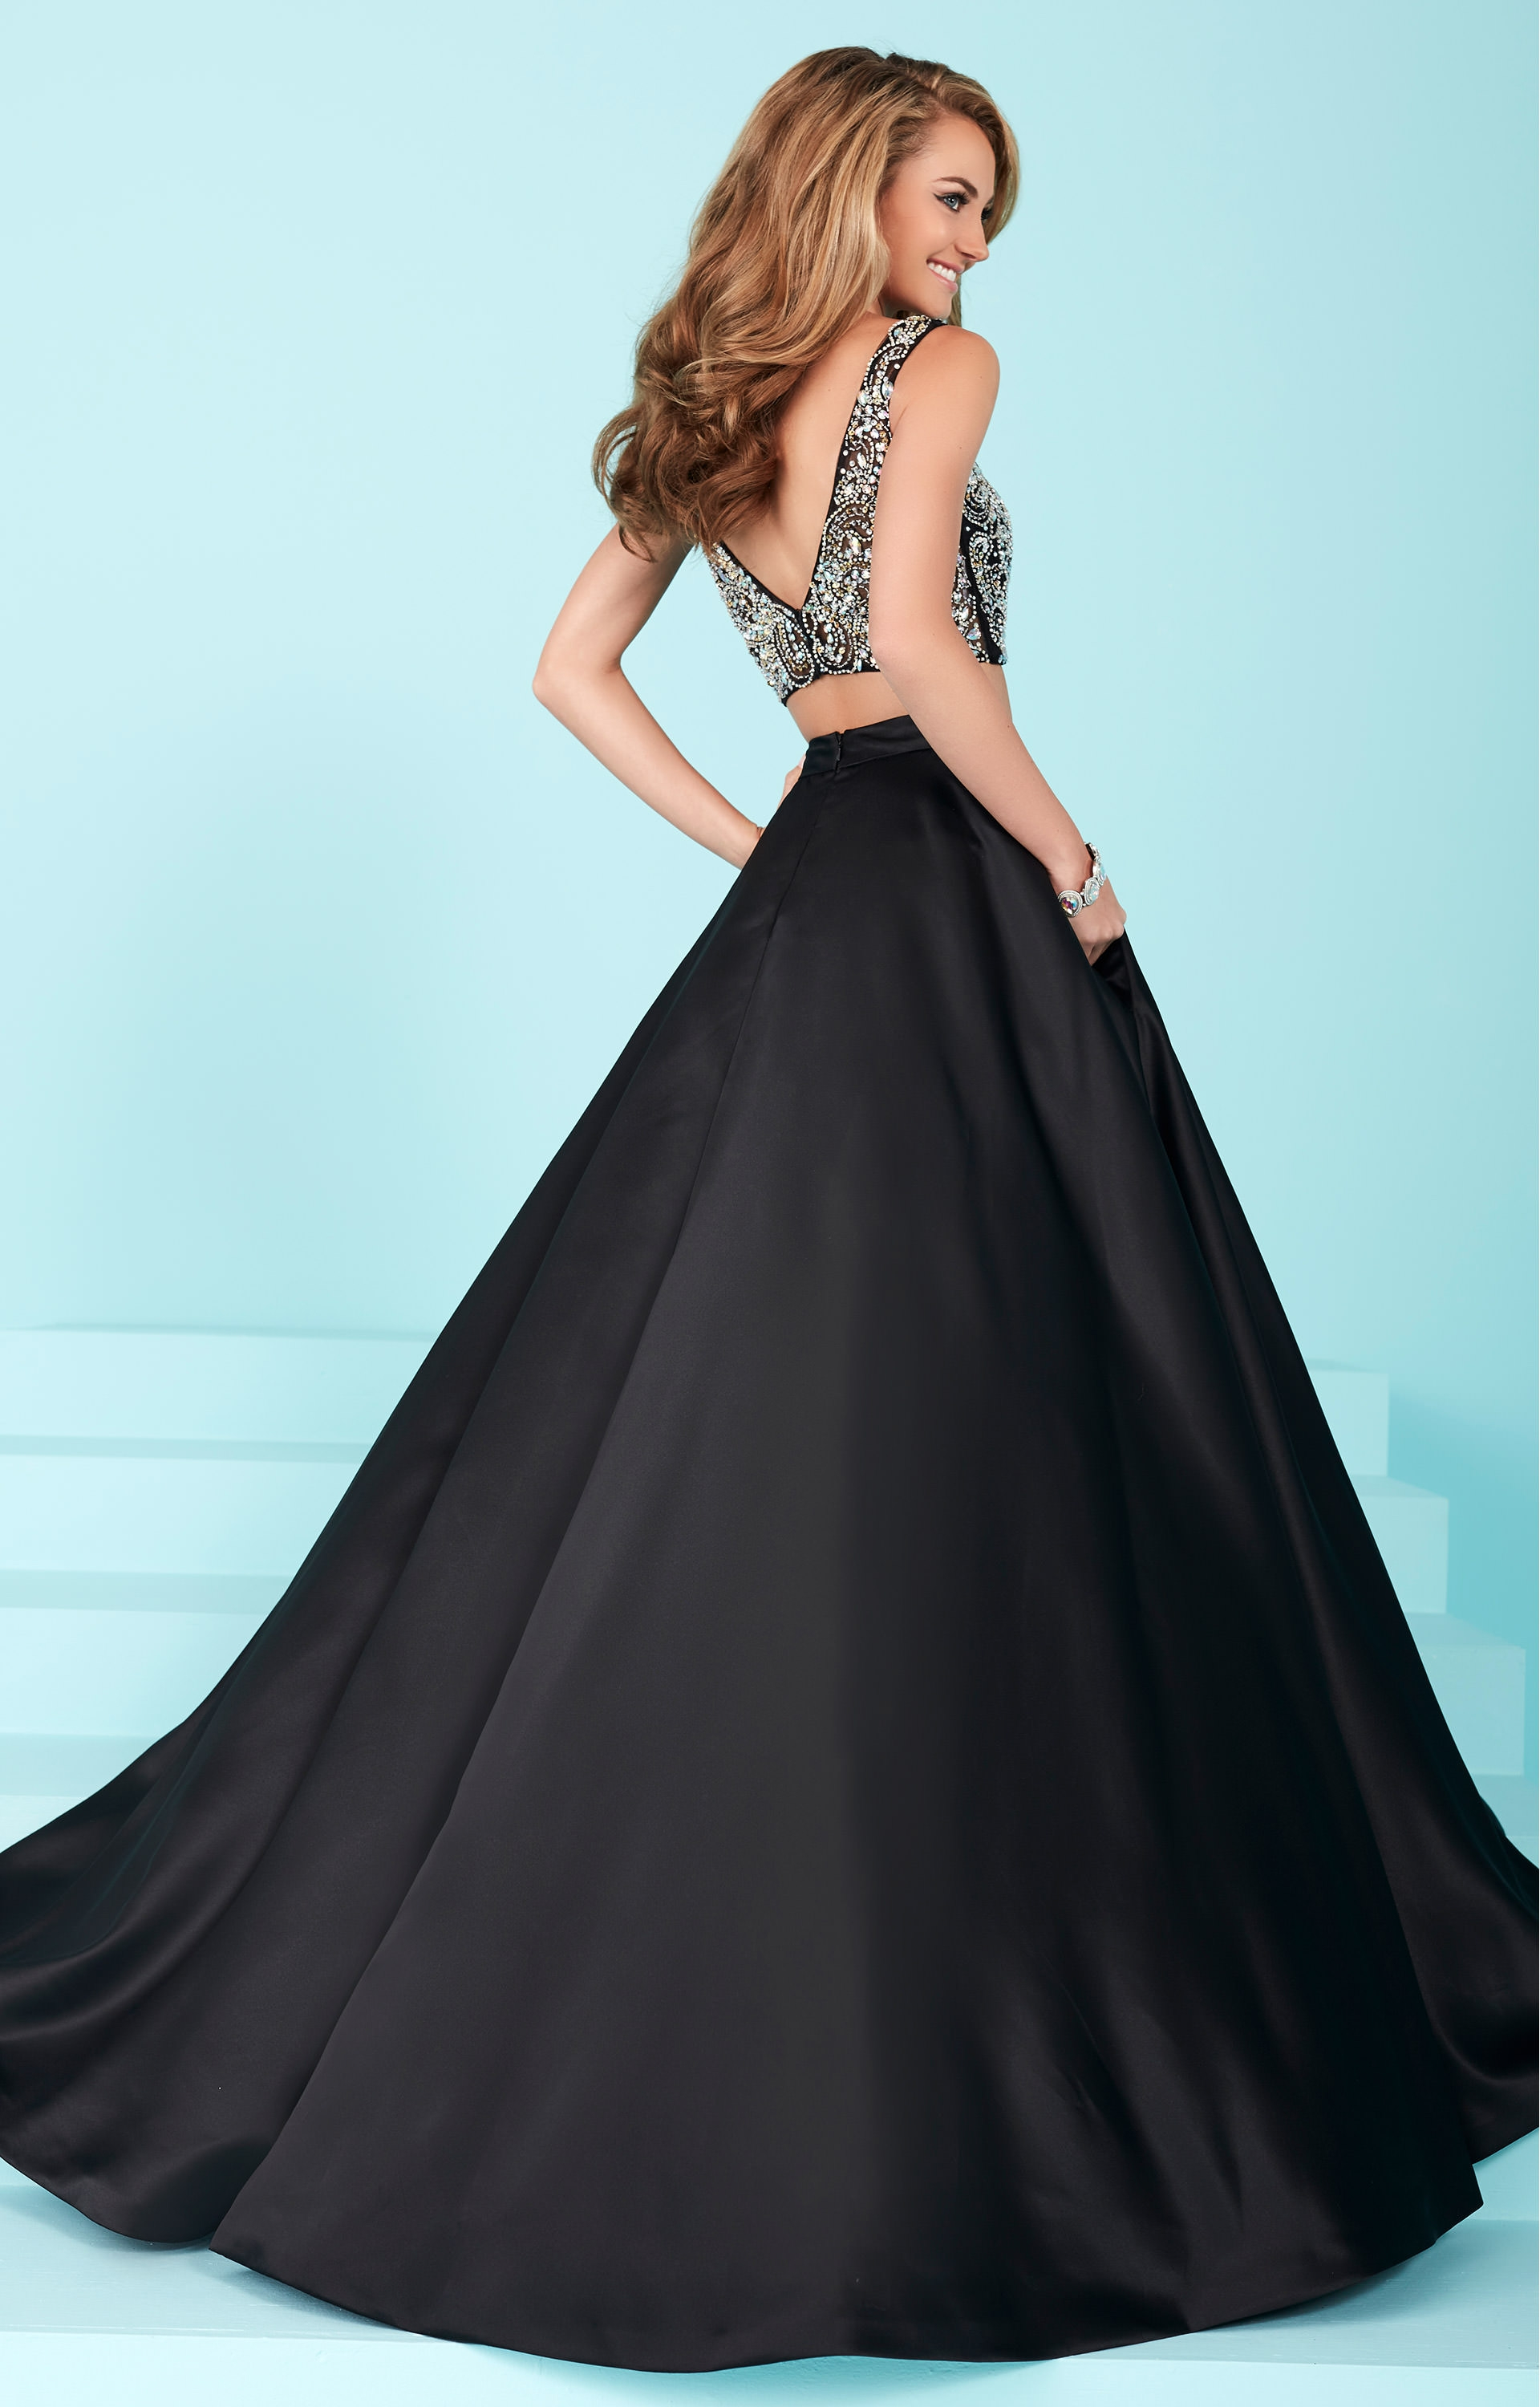 Tiffany Designs 16258 - Silky Beaded Two Piece Dress Prom Dress